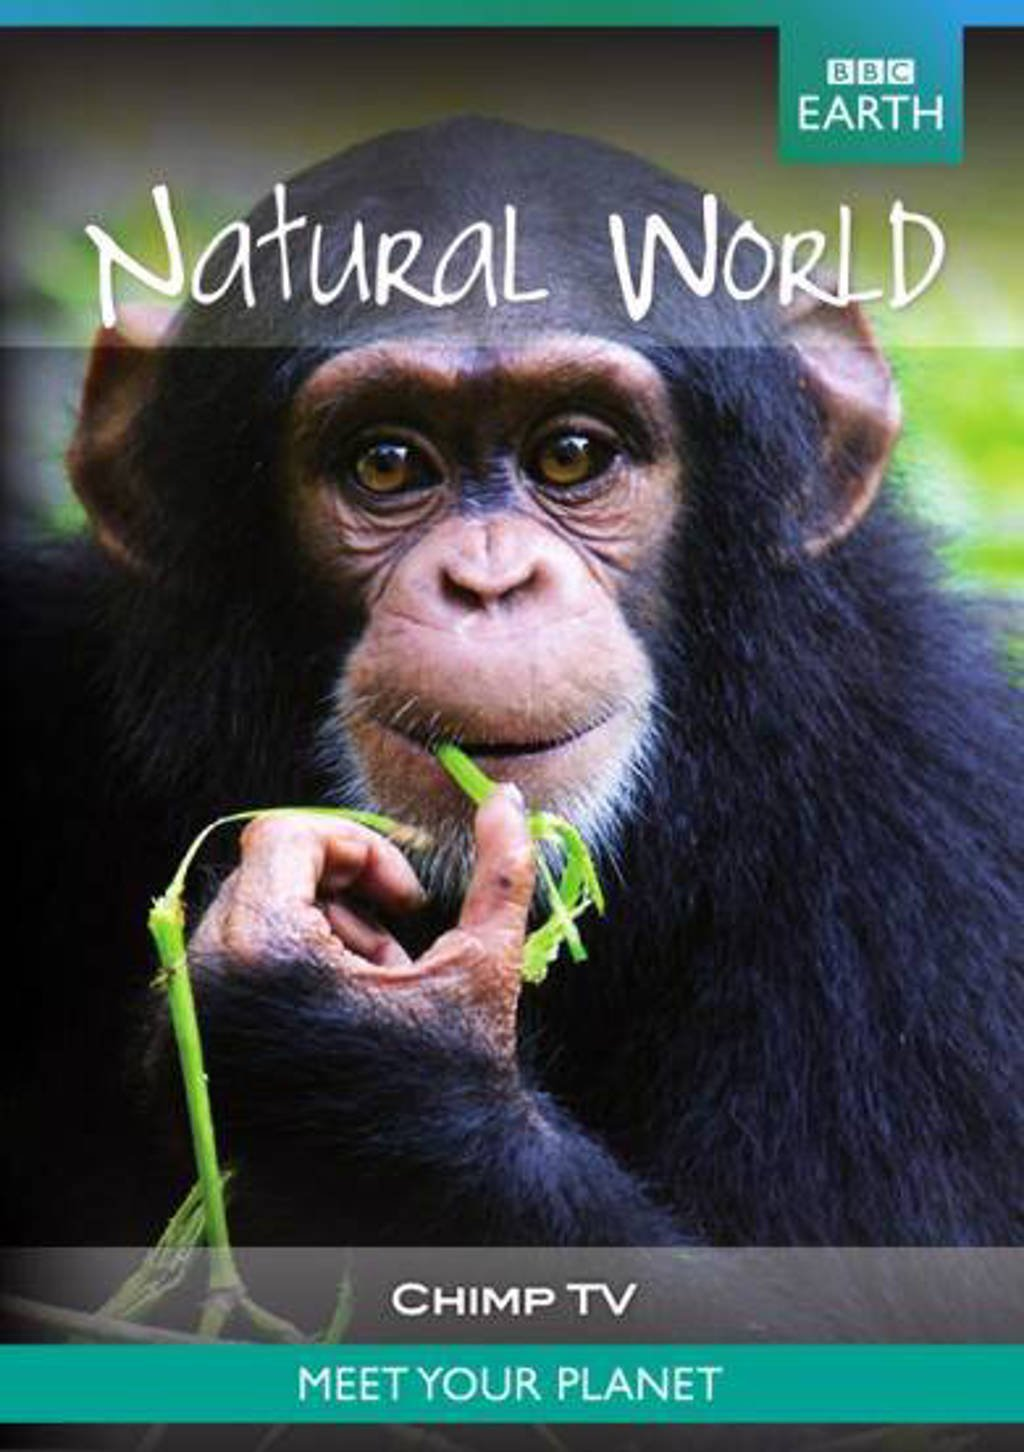 BBC earth - Natural world natural world collection chimp tv (DVD)